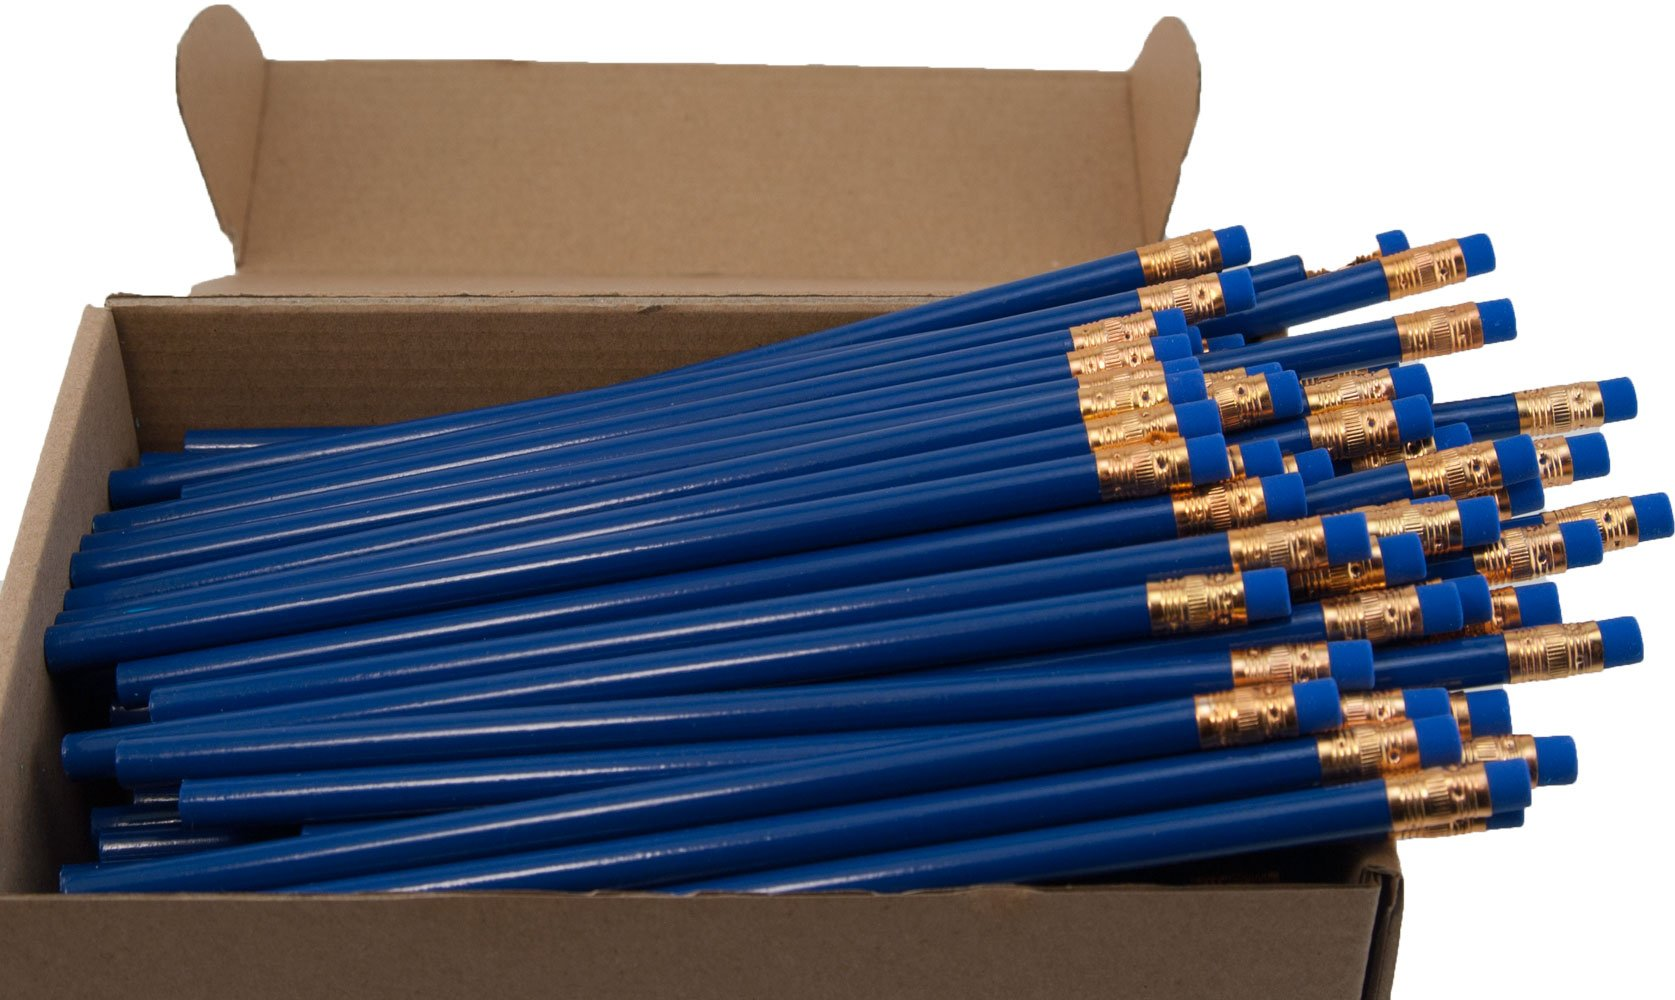 Recycled Newspaper Pencil (Royal Blue) (Full Size Round Painted Pencils) (Earth Friendly Pencil) (Latex Free Eraser) (HB Number 2 Lead ) (Box of 144)